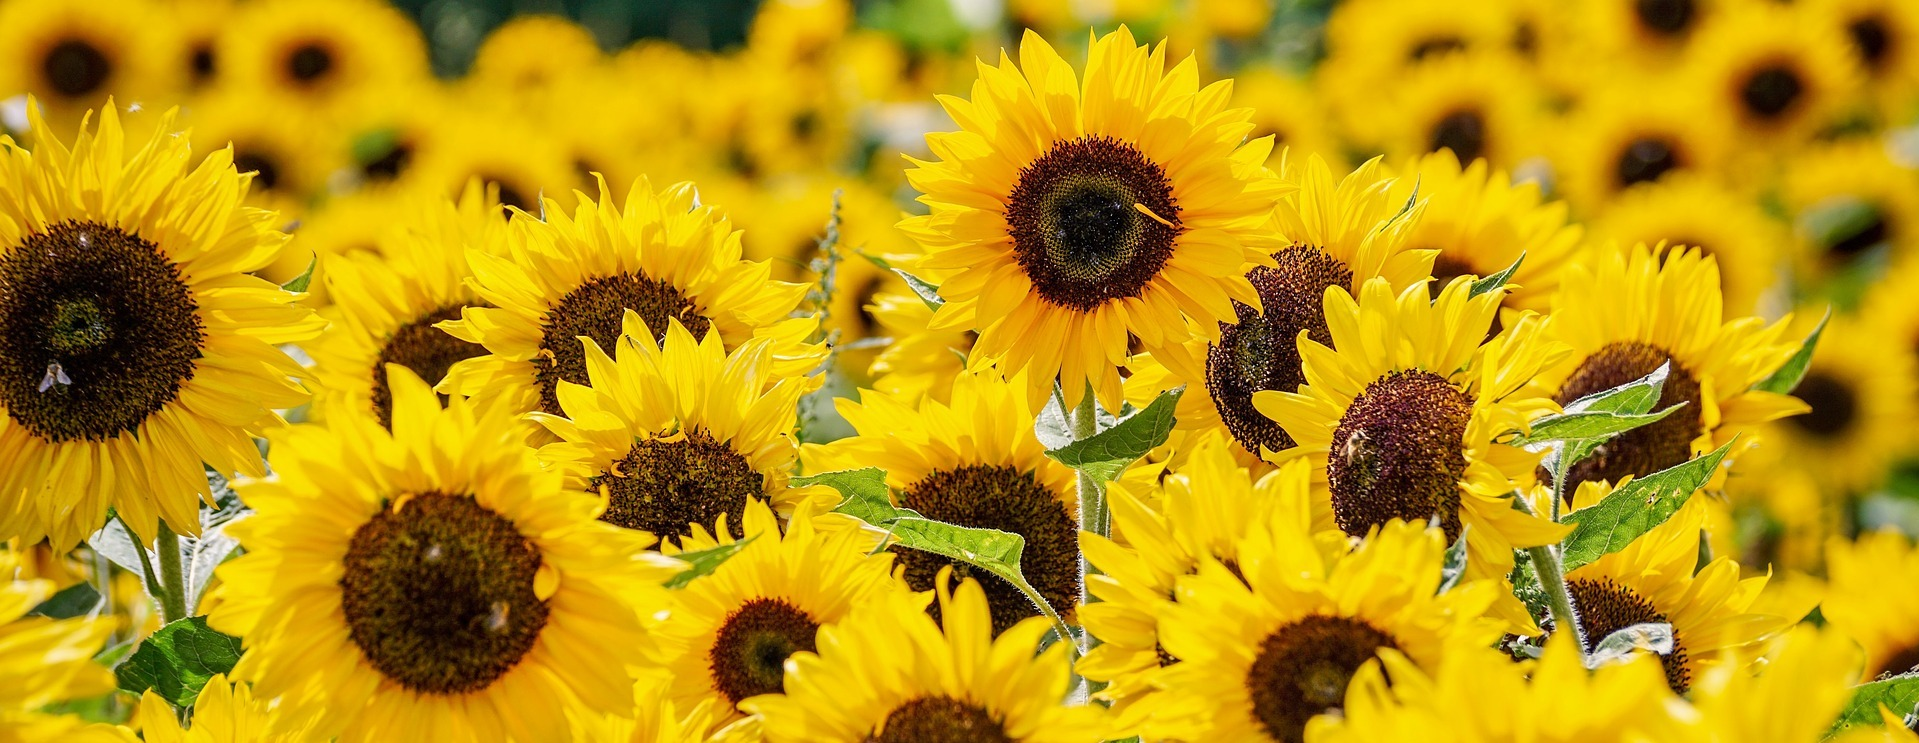 Russian sunflower oil fell 7% in December